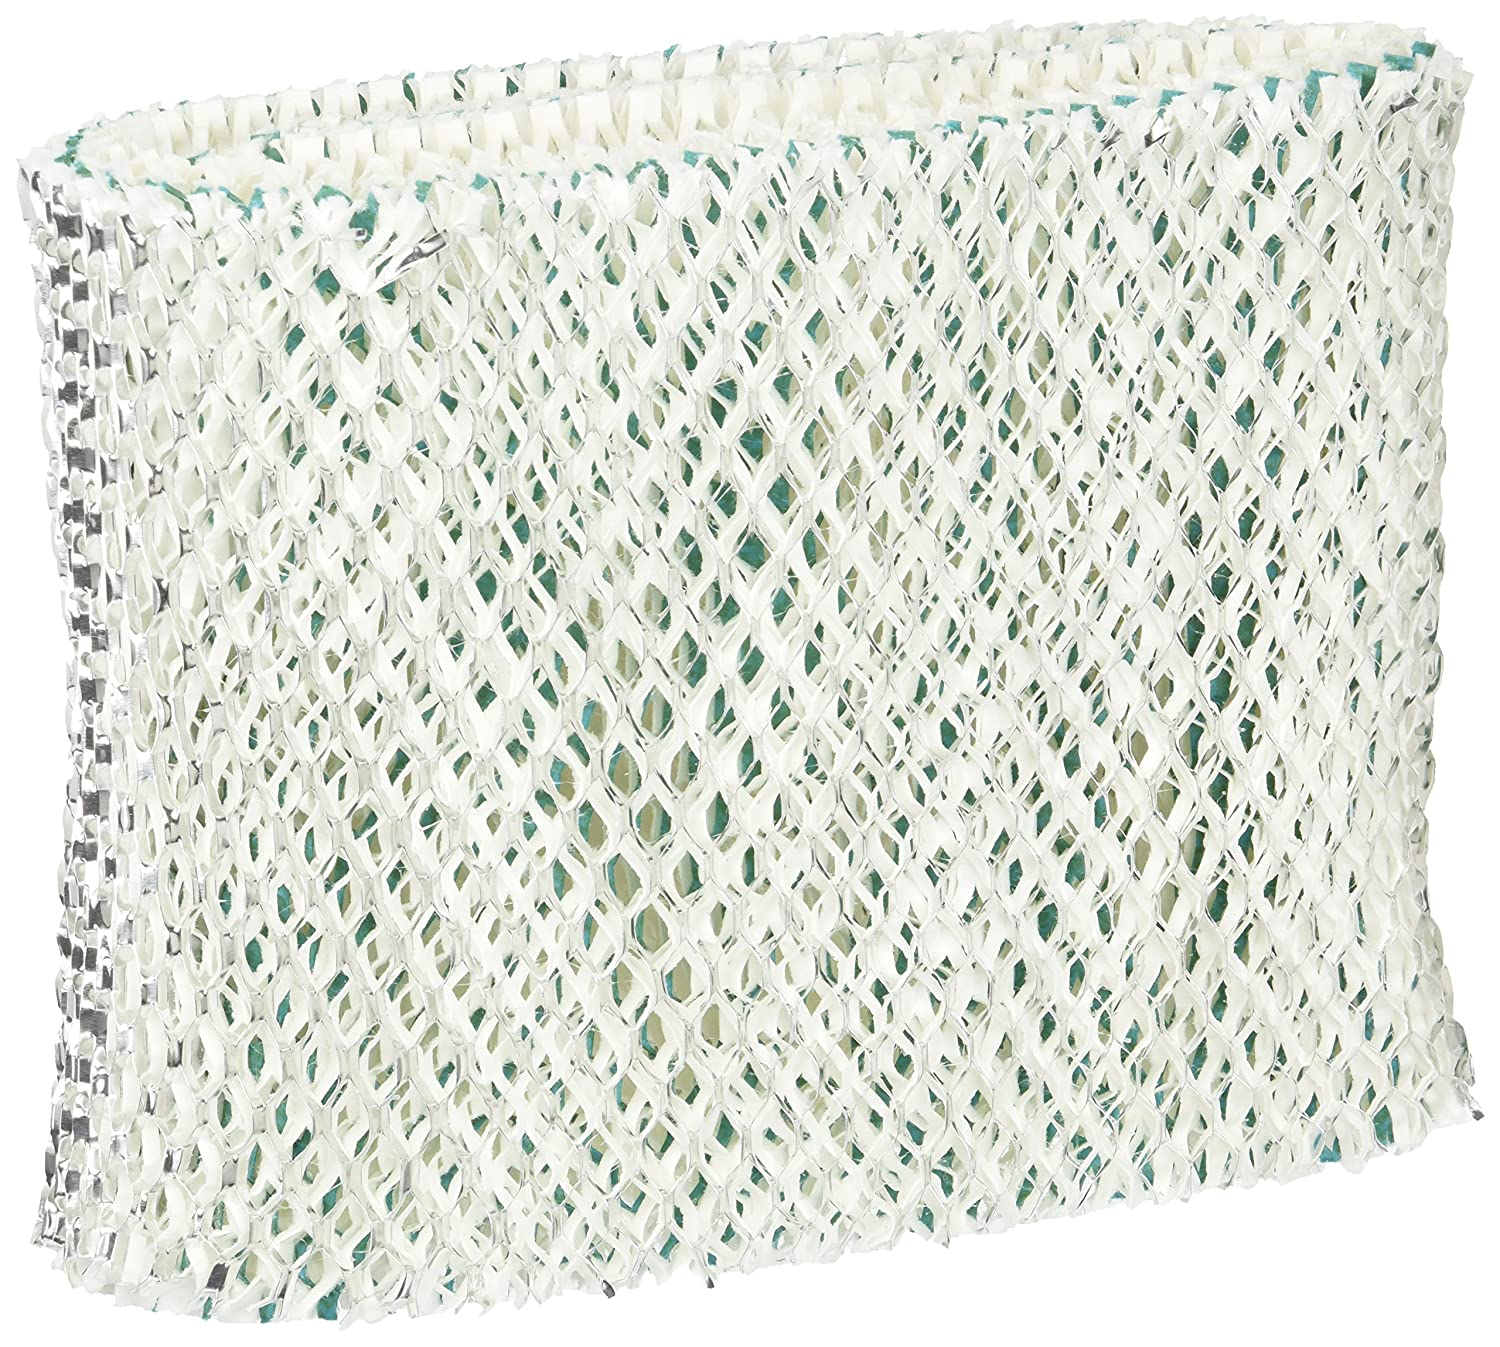 RPS PRODUCTS EF21 Humidi-Wick Filters RPS PRODUCTS INC